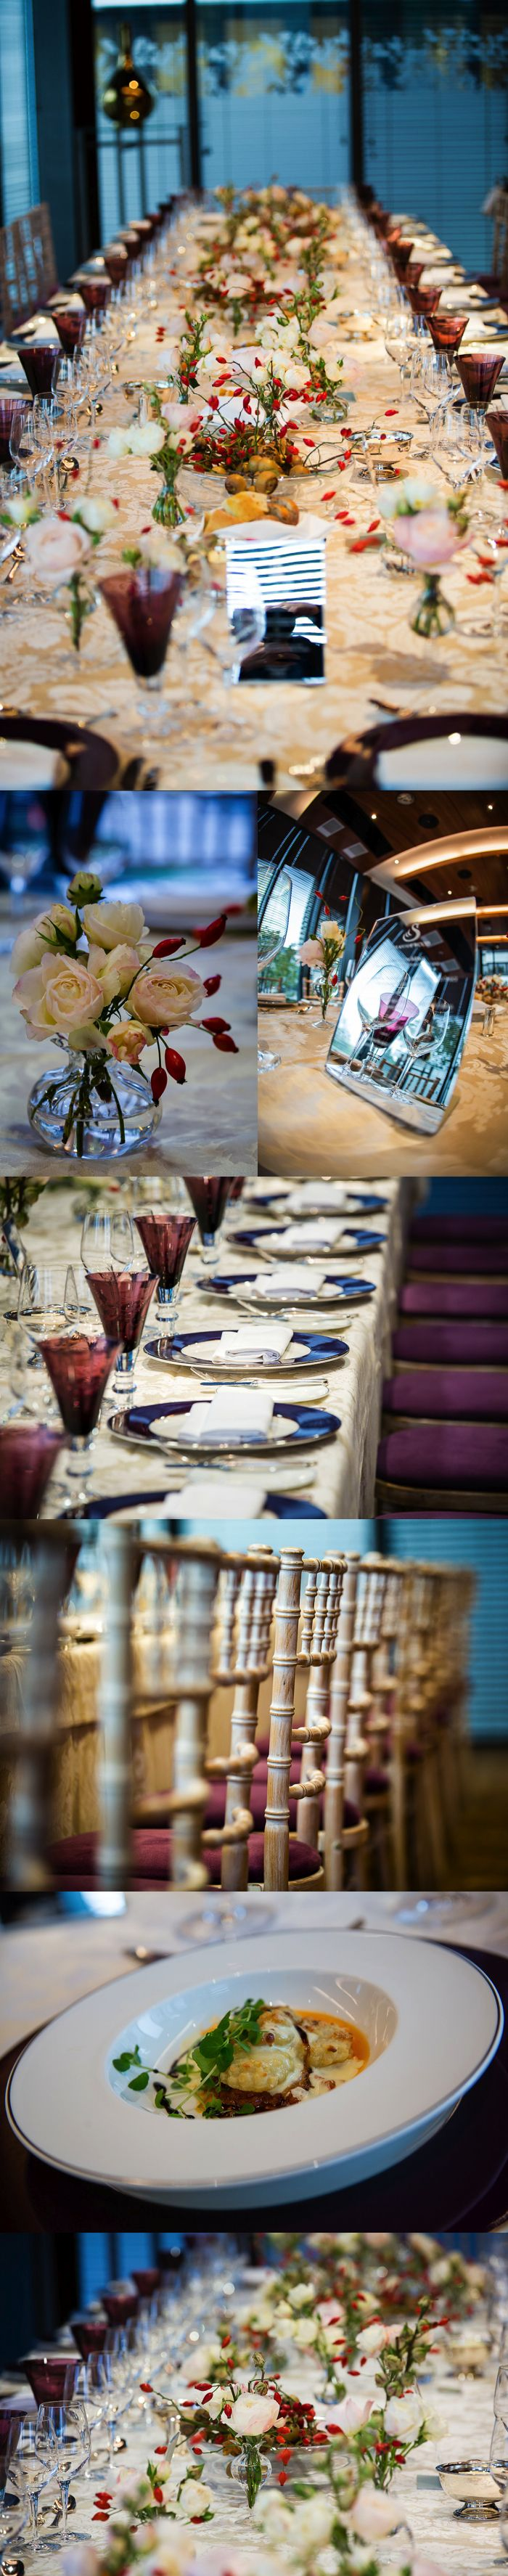 Sarah Haywood London Wedding Decoration Read More Top 10 Planners